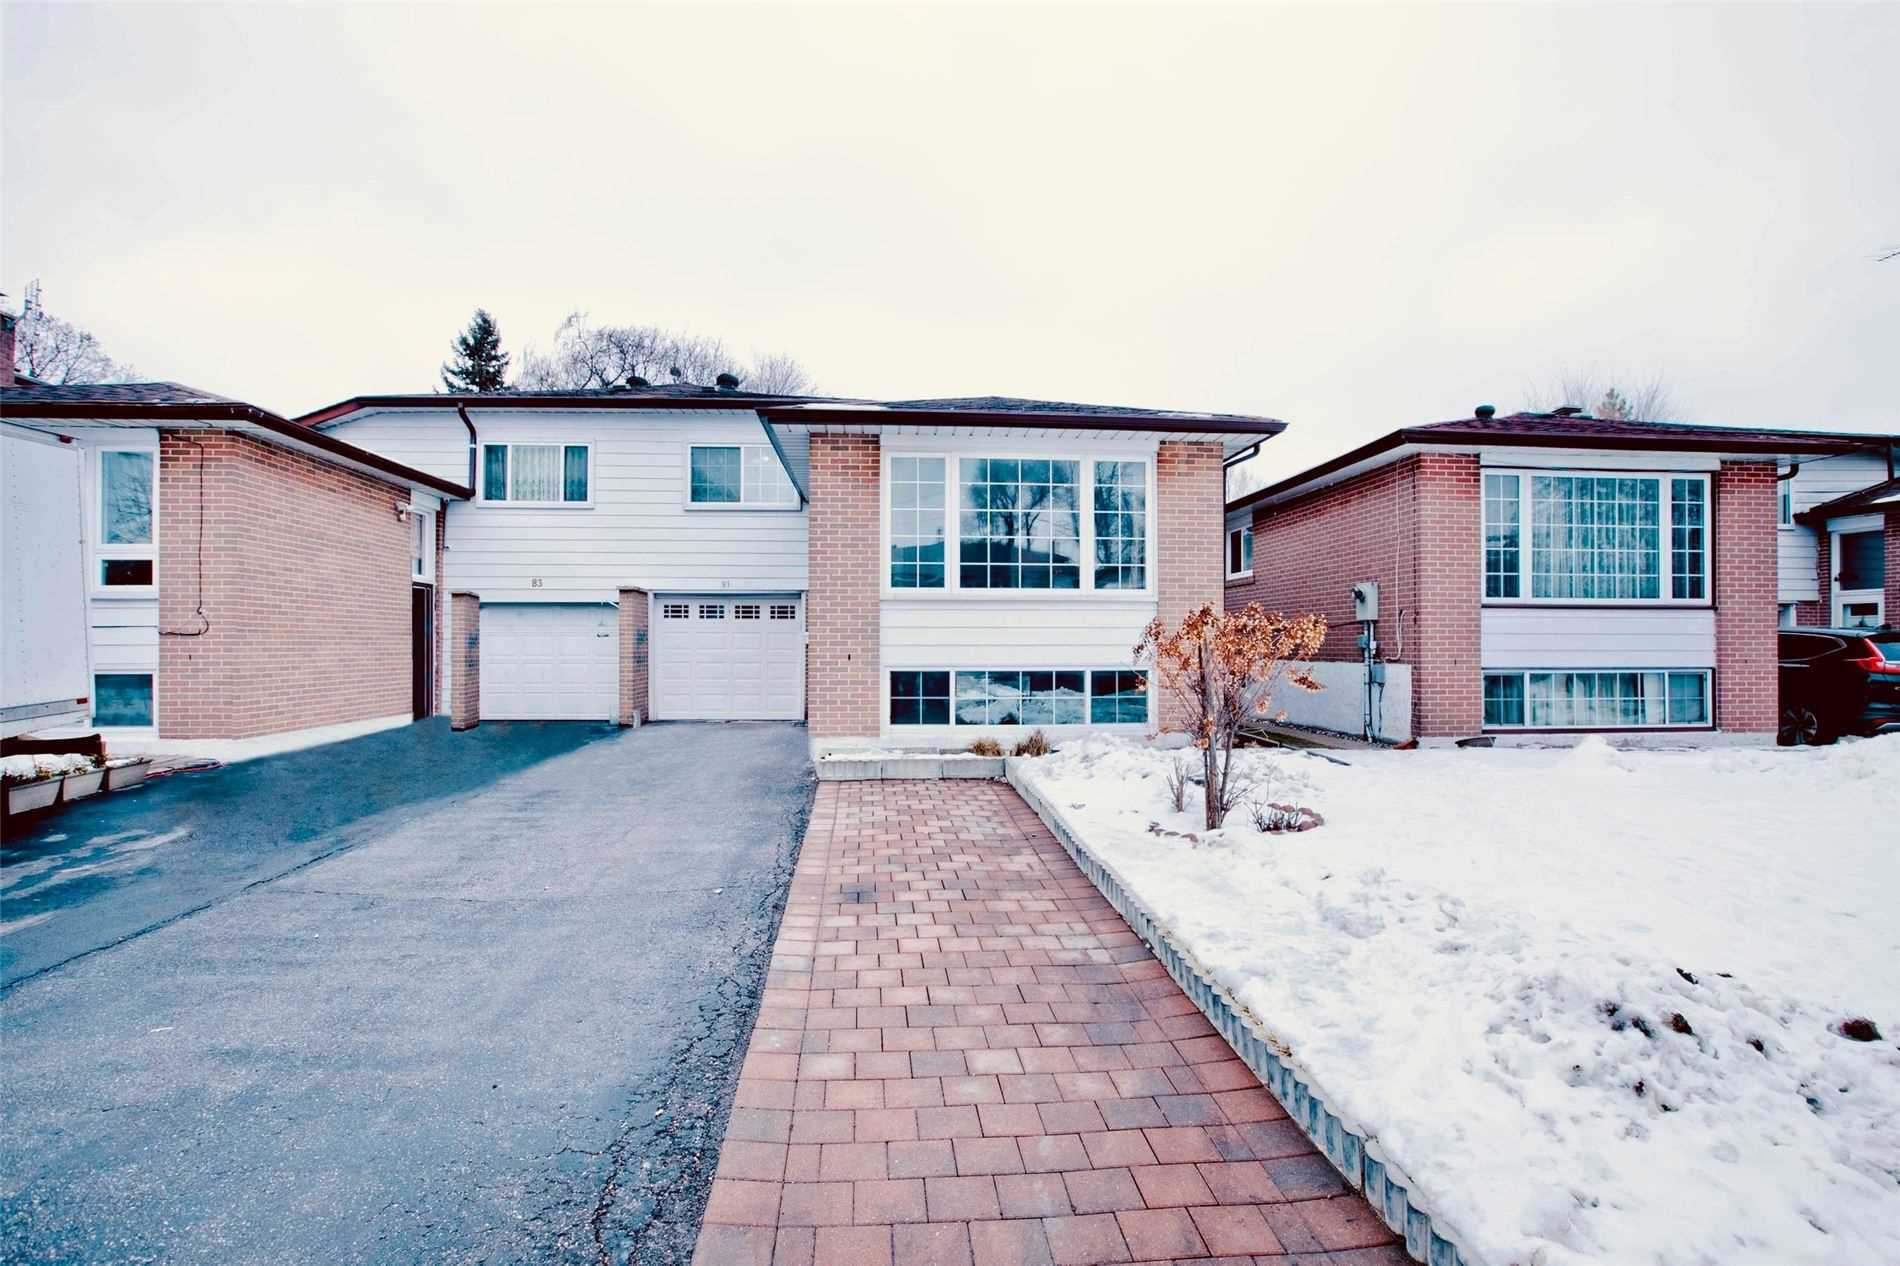 pictures of house for sale MLS: E5086149 located at 81 Glenstroke Dr, Toronto M1S3A1